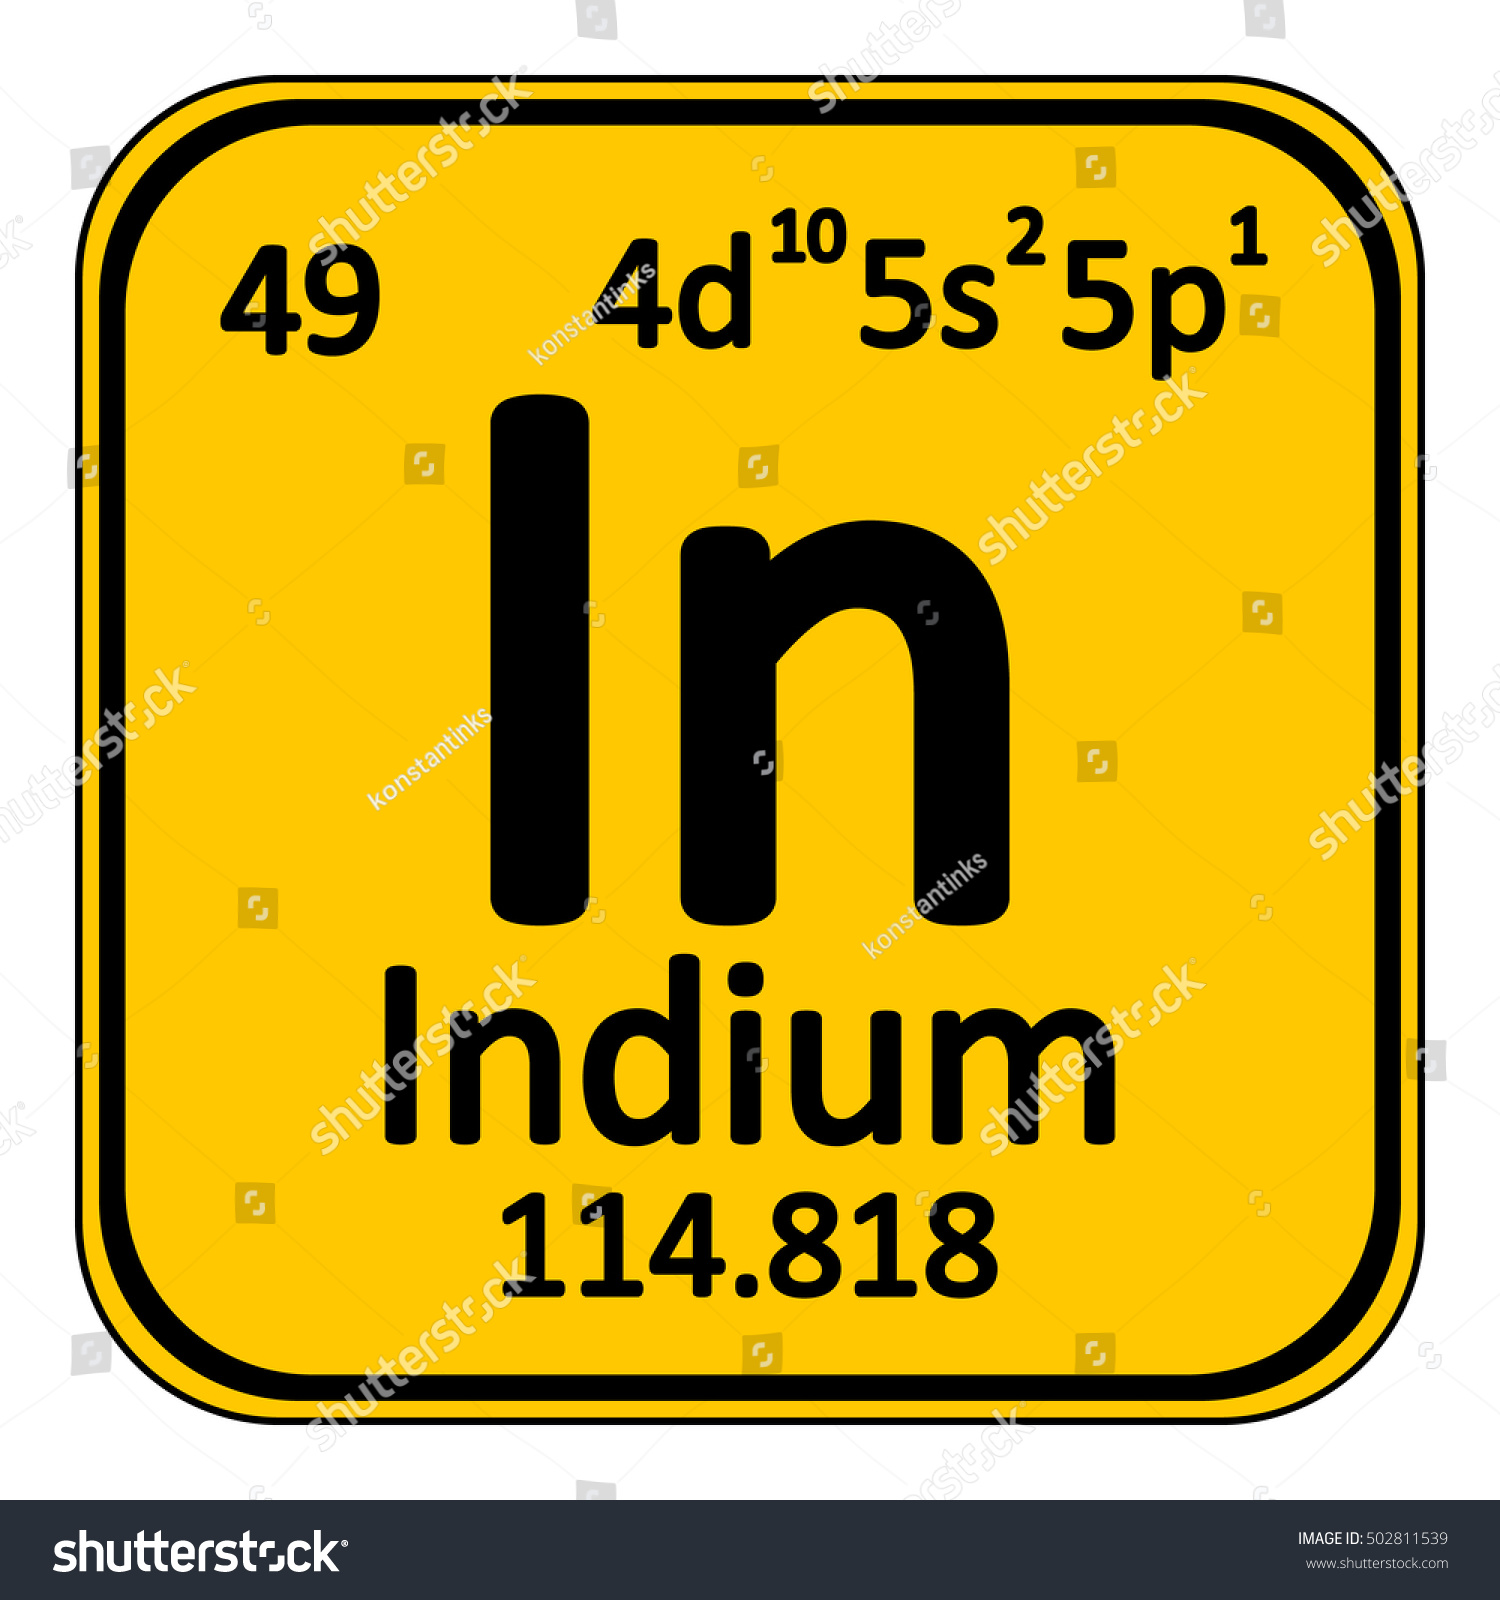 Indium symbol periodic table gallery periodic table images indium in periodic table gallery periodic table images periodic table element indium icon on stock vector gamestrikefo Gallery